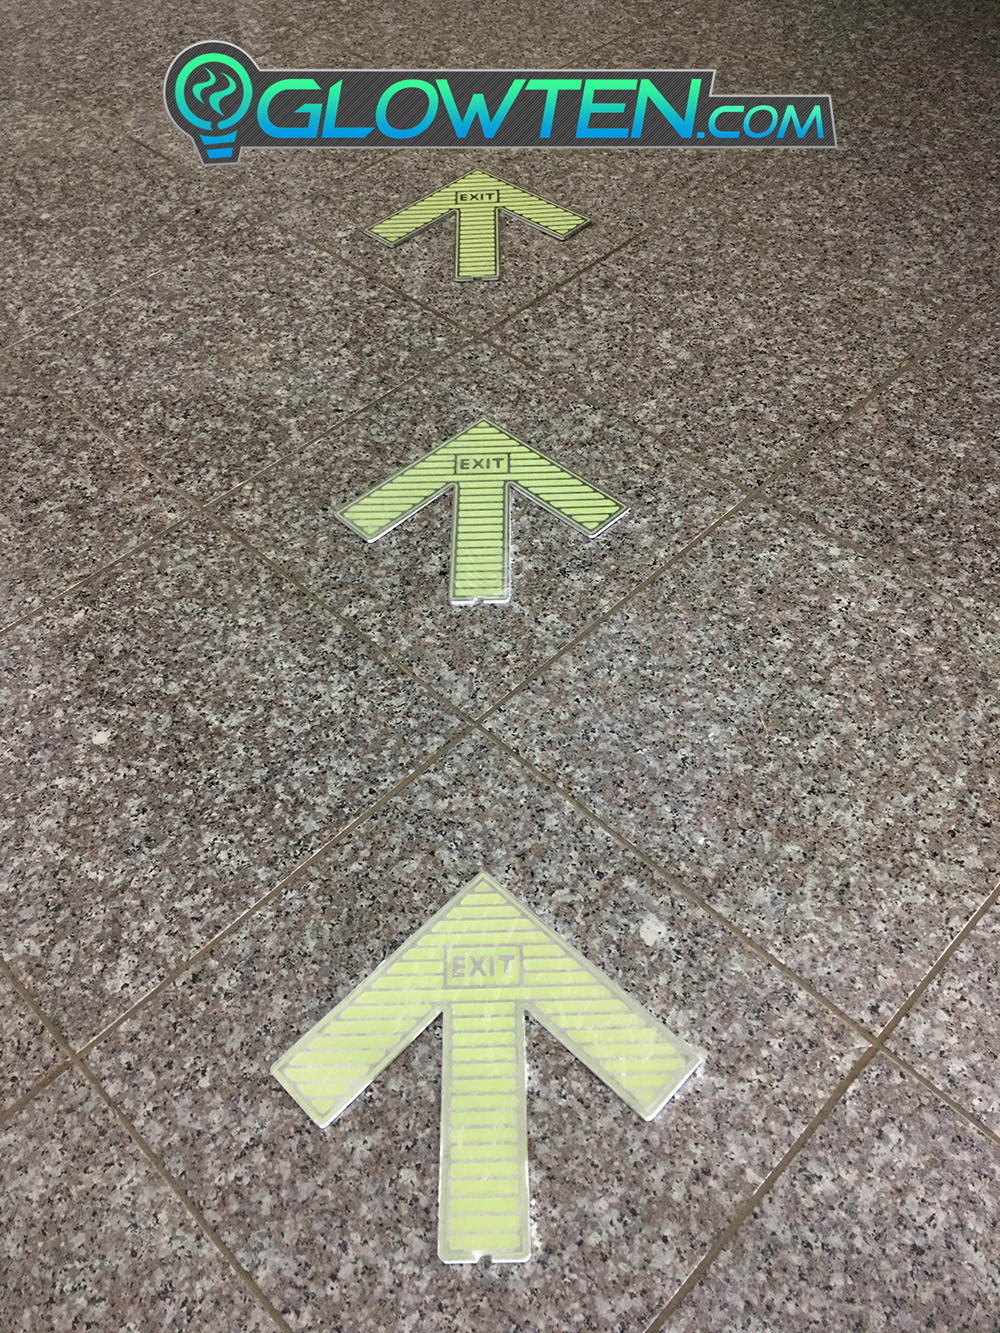 GLOWTEN.com - Luminous Decal Decor Large Arrow Glow In The Dark Ground Direction With Exit Text Sign Square Block Stainless Steel Metal picture photo cap preview pic image search 2